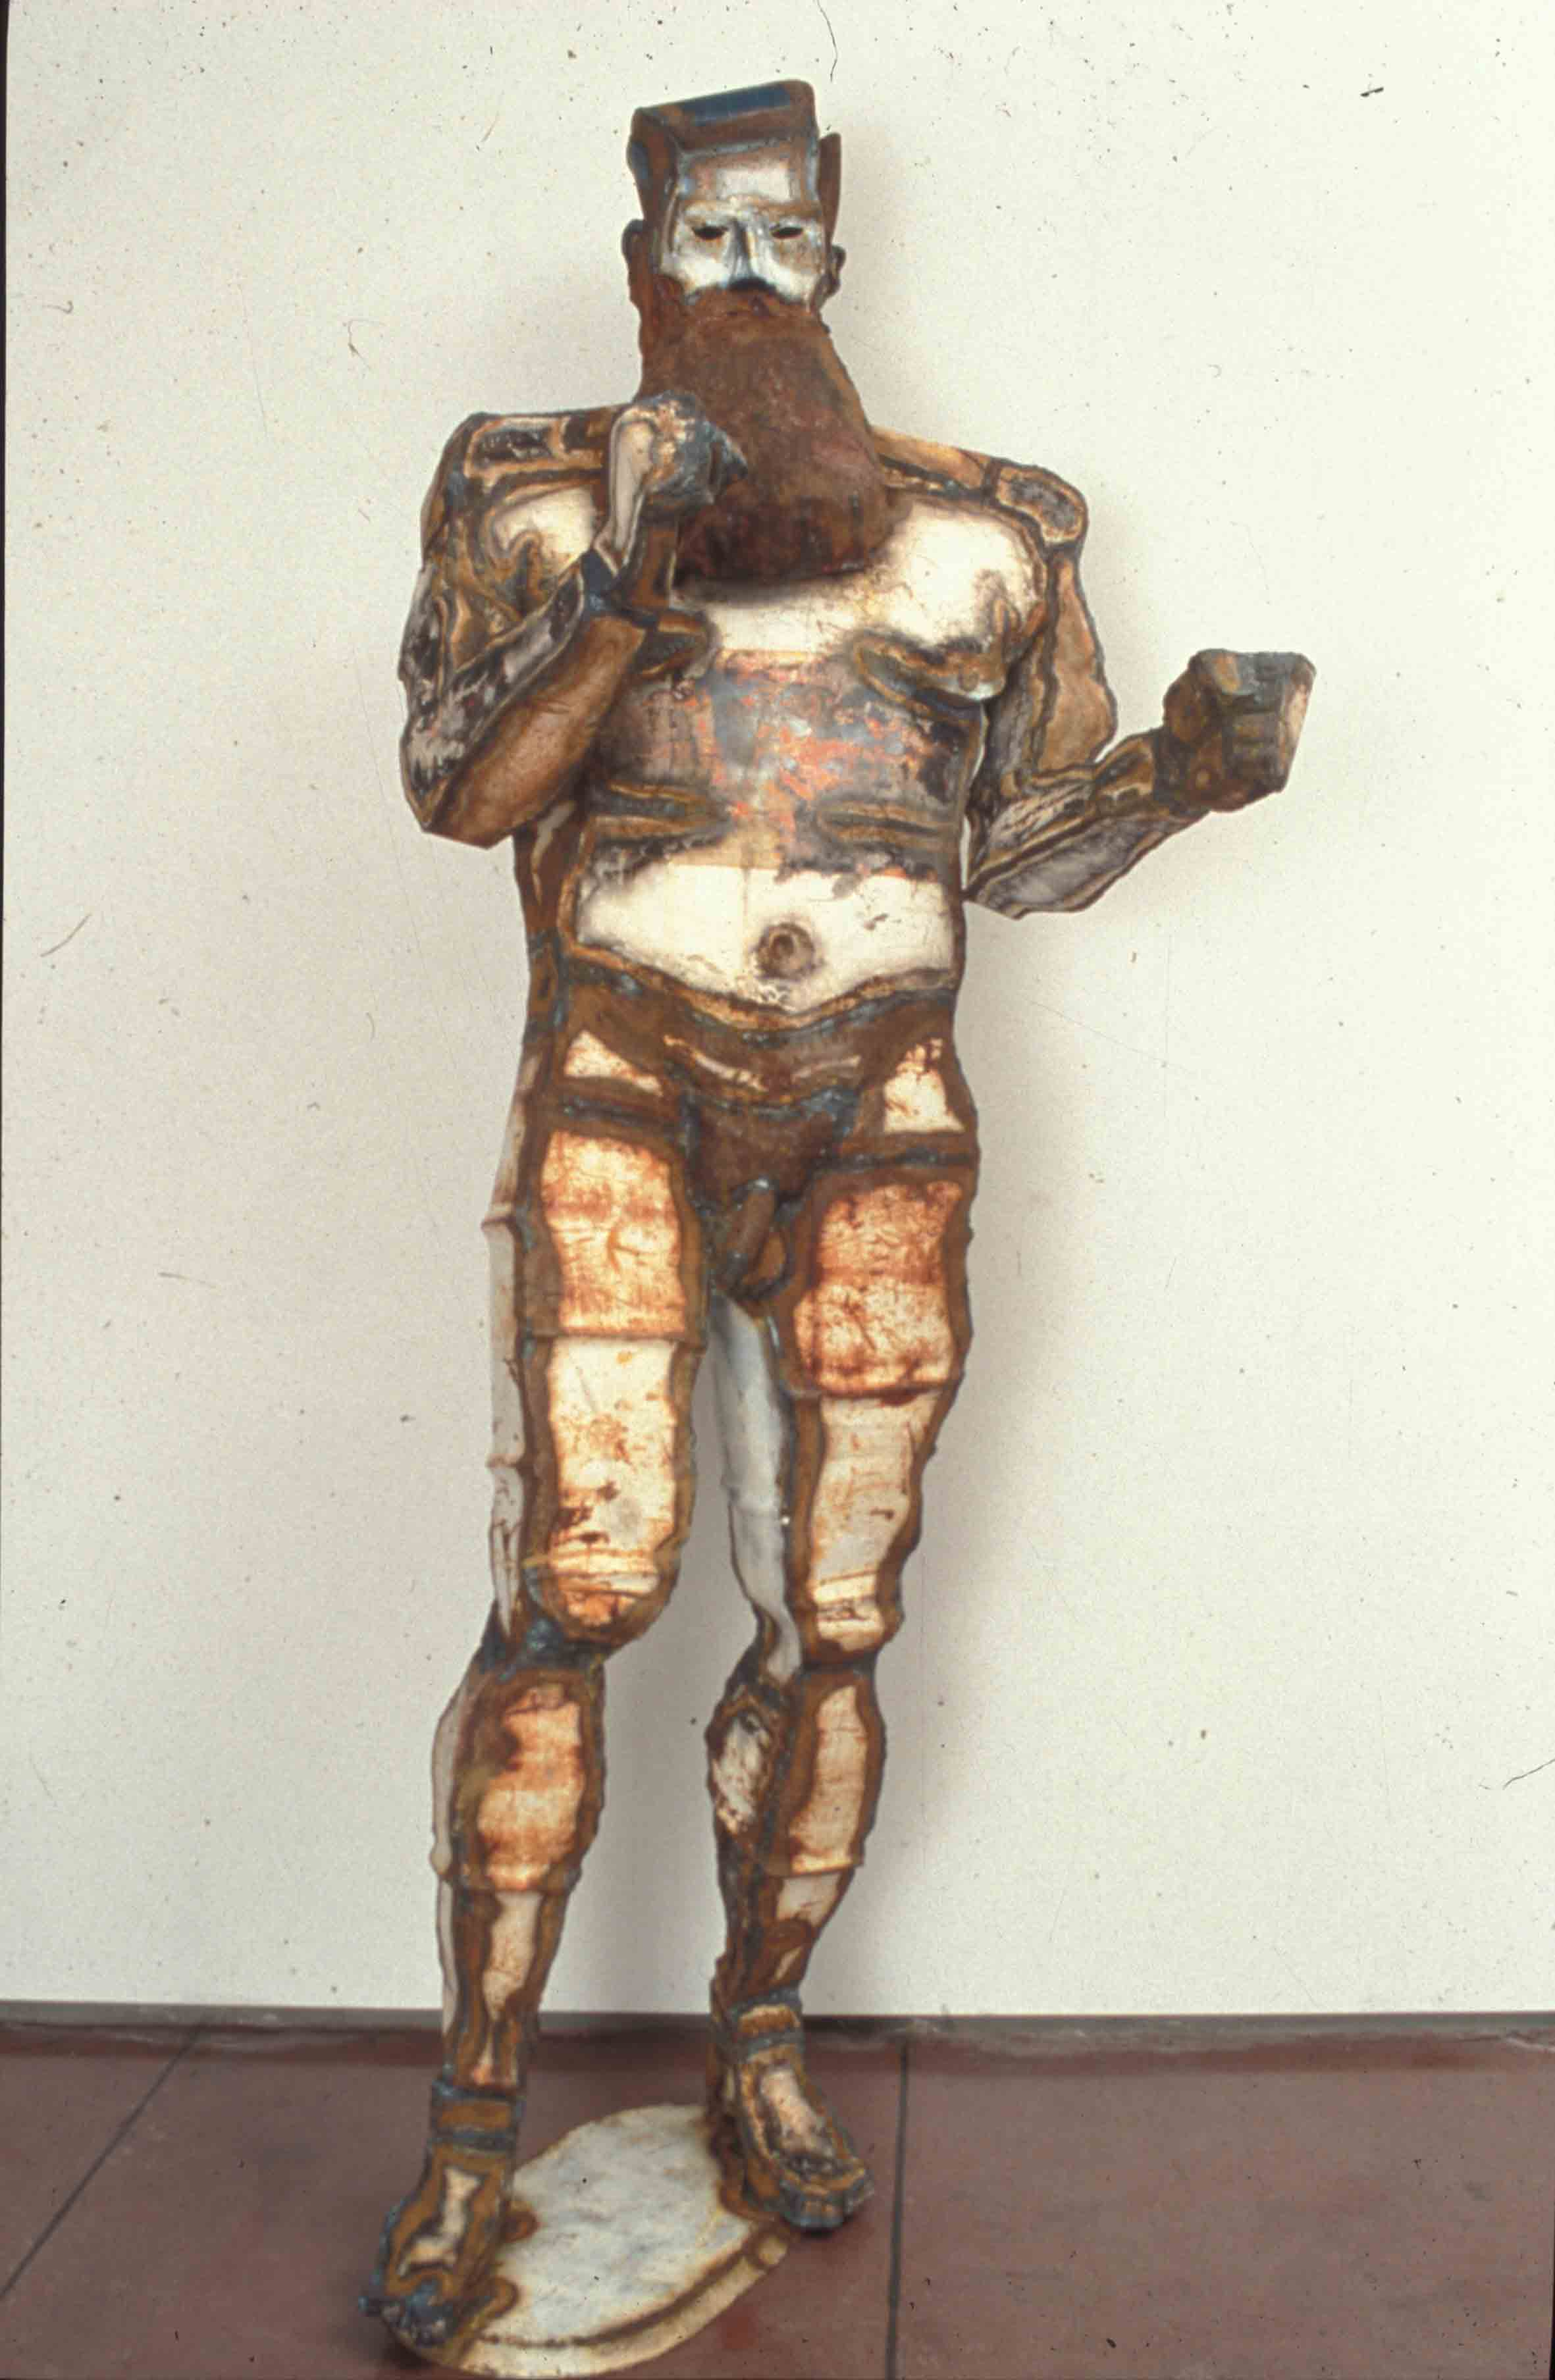 'Fighting Ned Kelly'  1989, 2.3m by 0.6m by 0.6m, steel